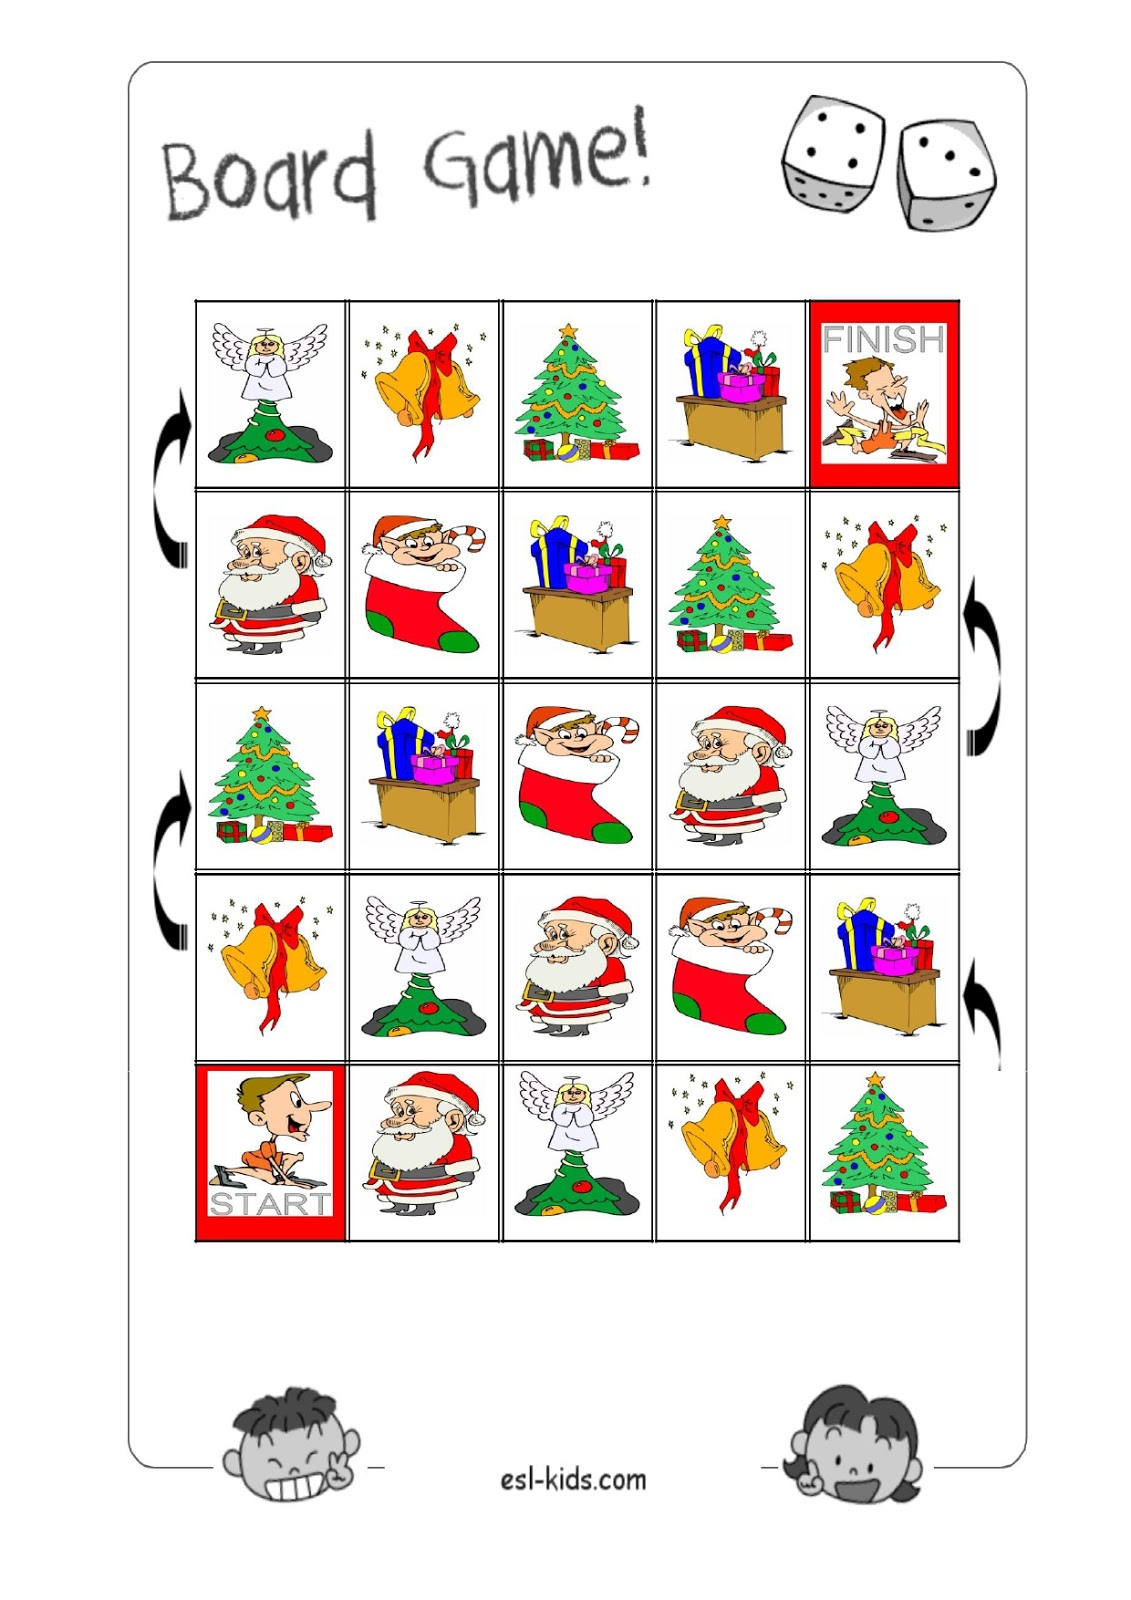 A+ Excellent : Christmas games (a board game and a memory game on the board)